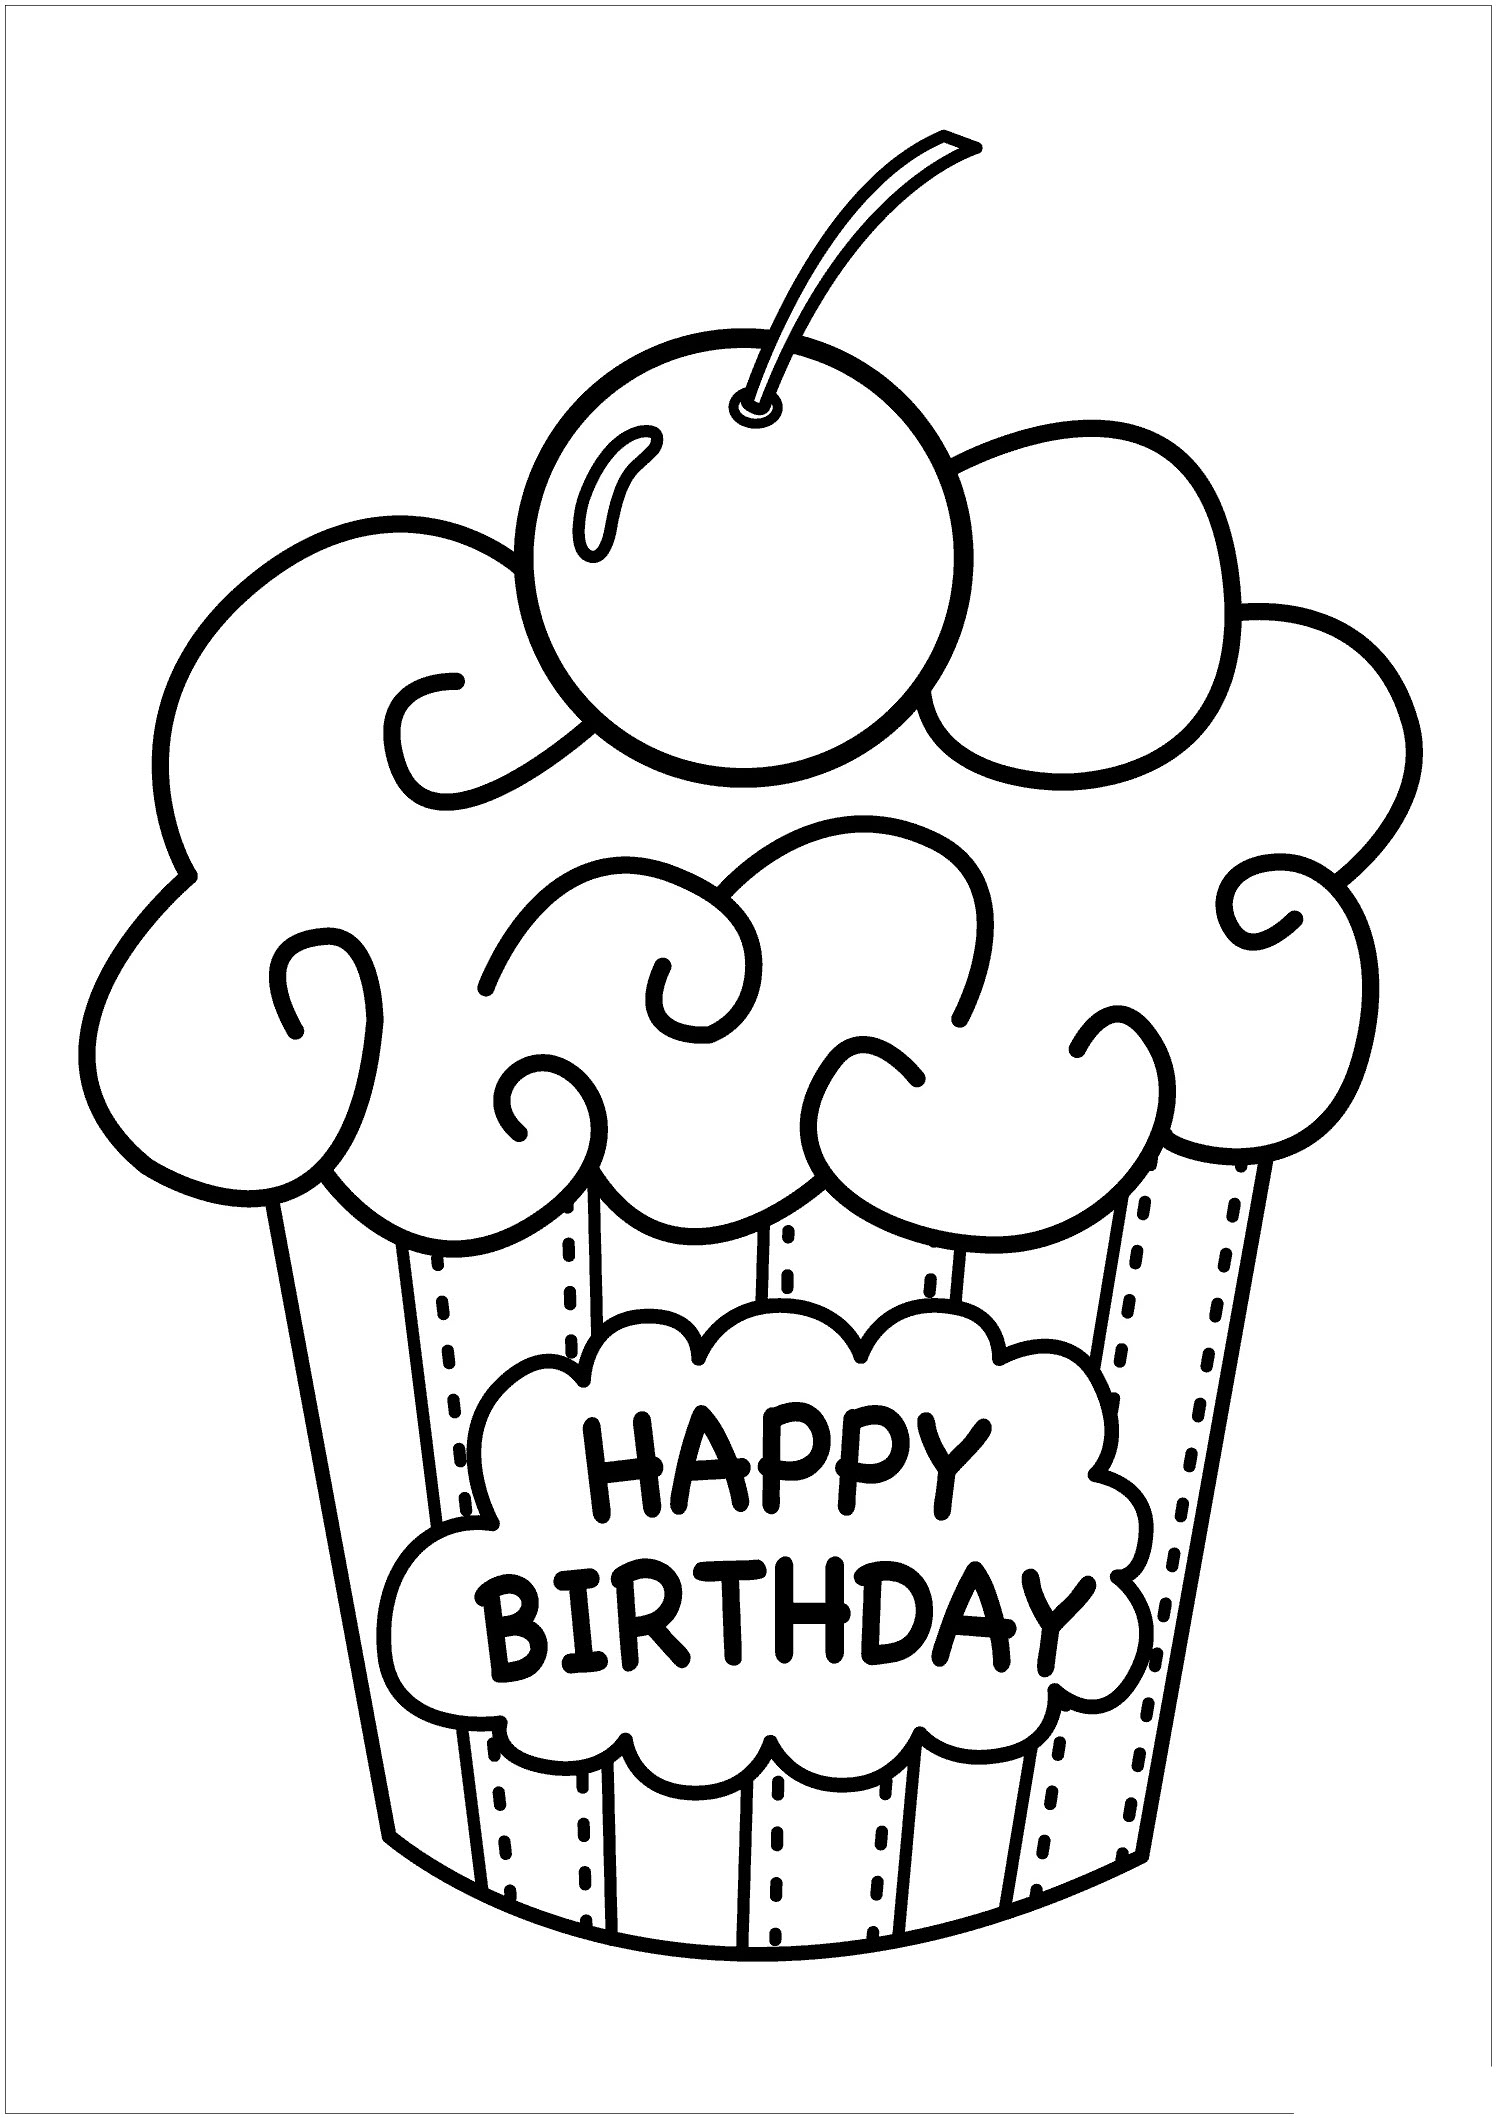 Cake Birthday Coloring Pages